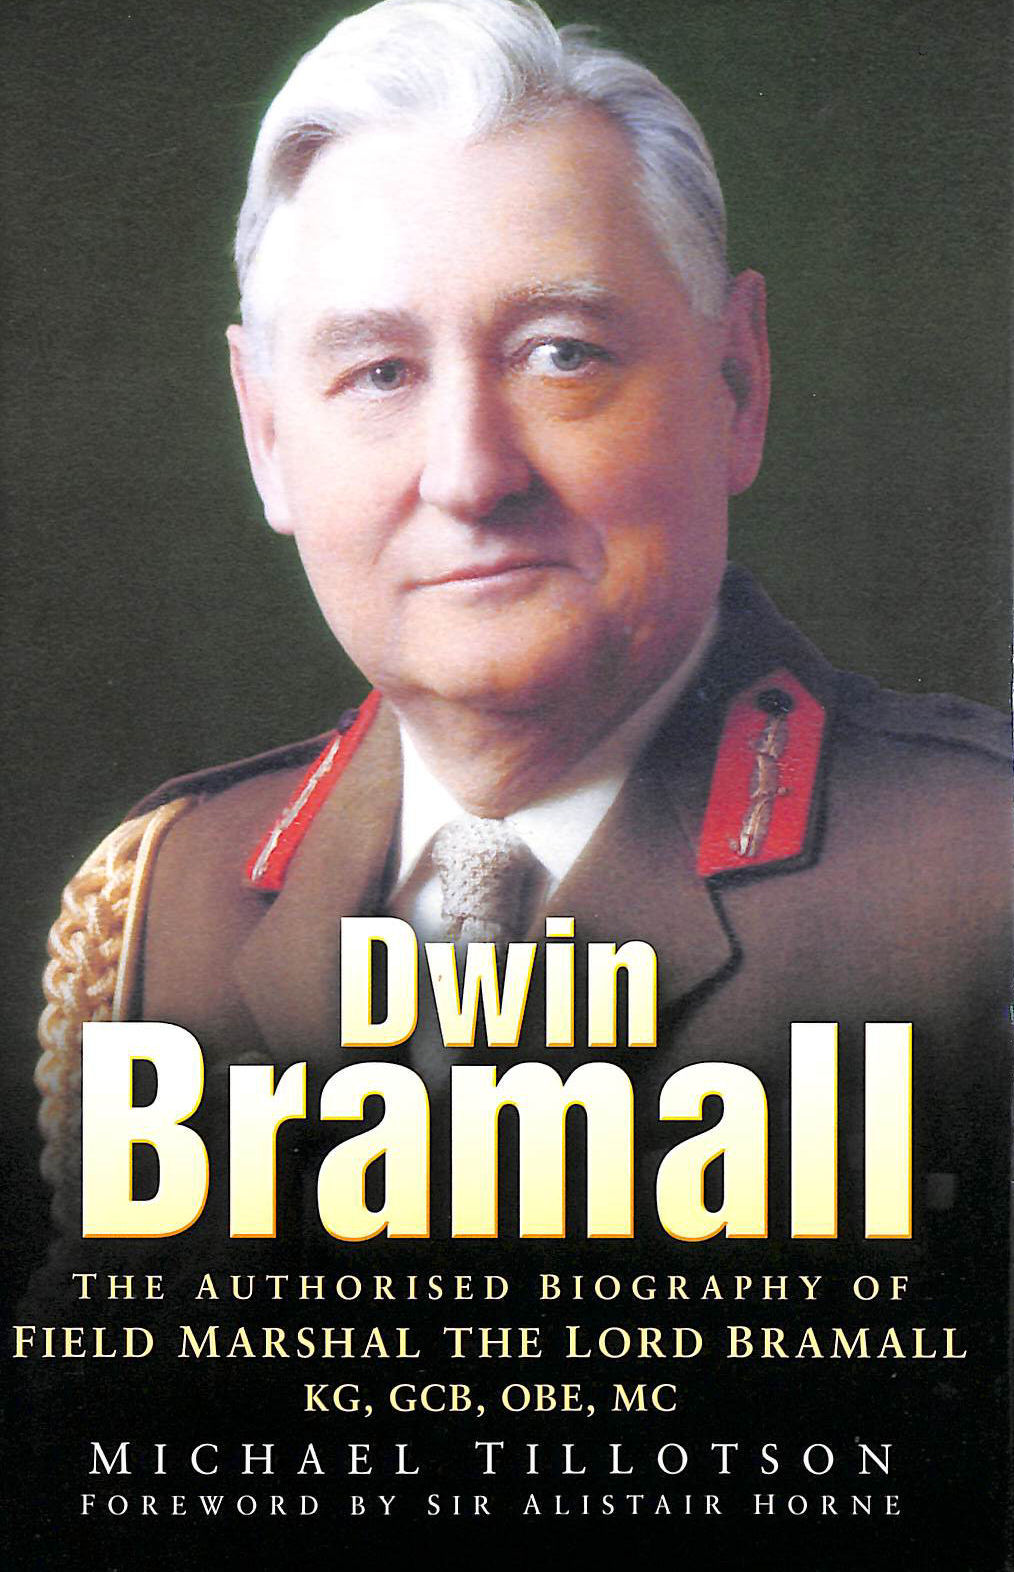 Image for Dwin Bramall: The Authorised Biography of Field Marshal The Lord Bramall KG, GCB, OBE, MC